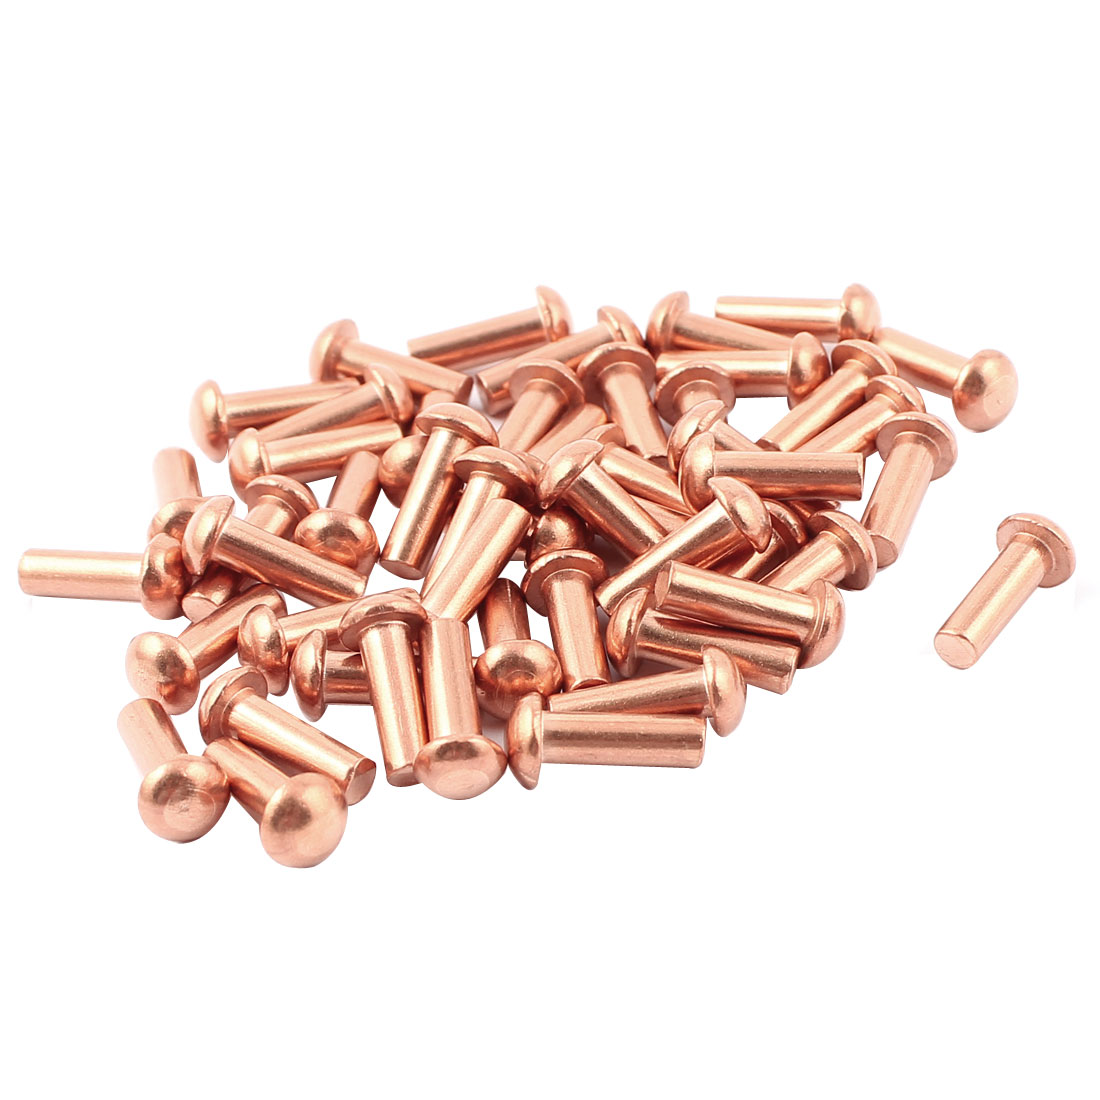 "50 Pcs 5/32"" x 15/32"" Round Head Copper Solid Rivets Fasteners"